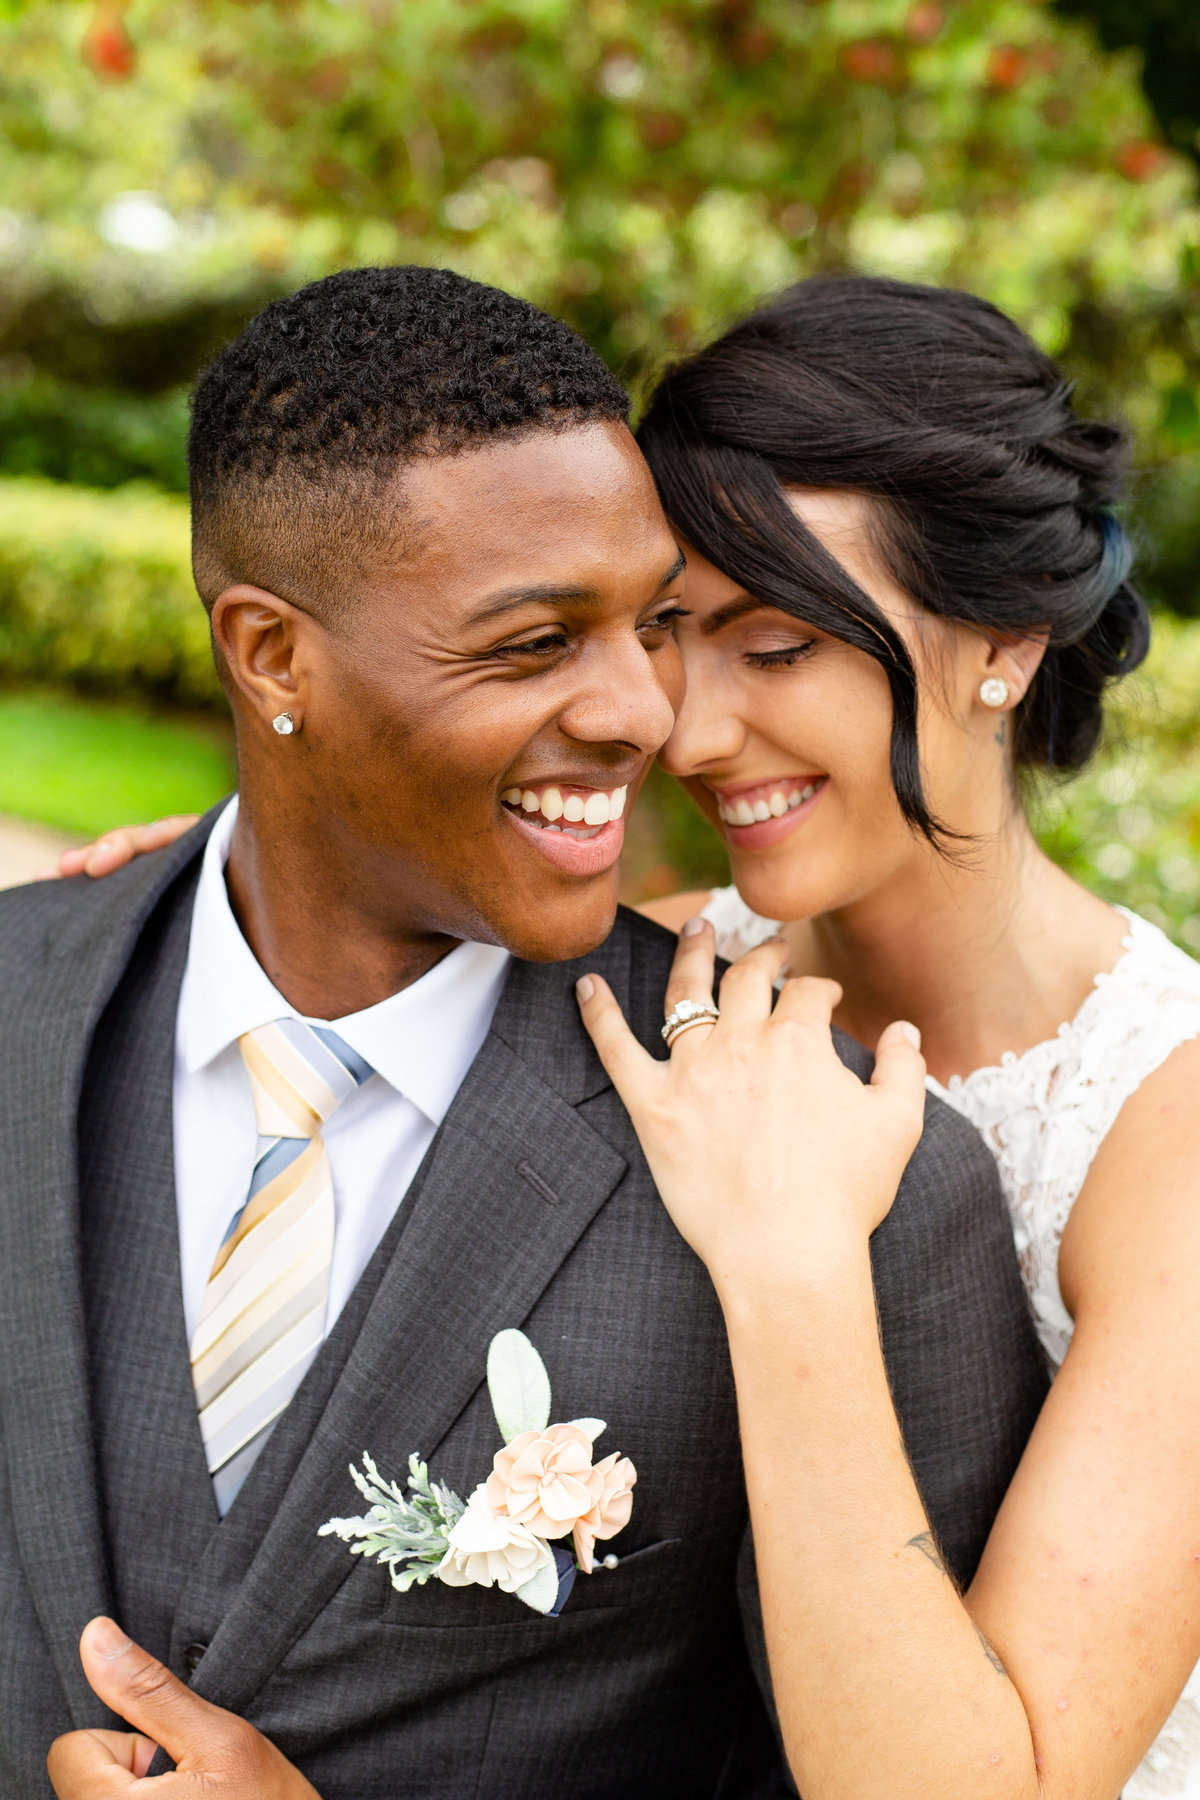 Bride and groom smile at each other on their wedding day in Orlando, Florida with groom in grey suit and boutonniere